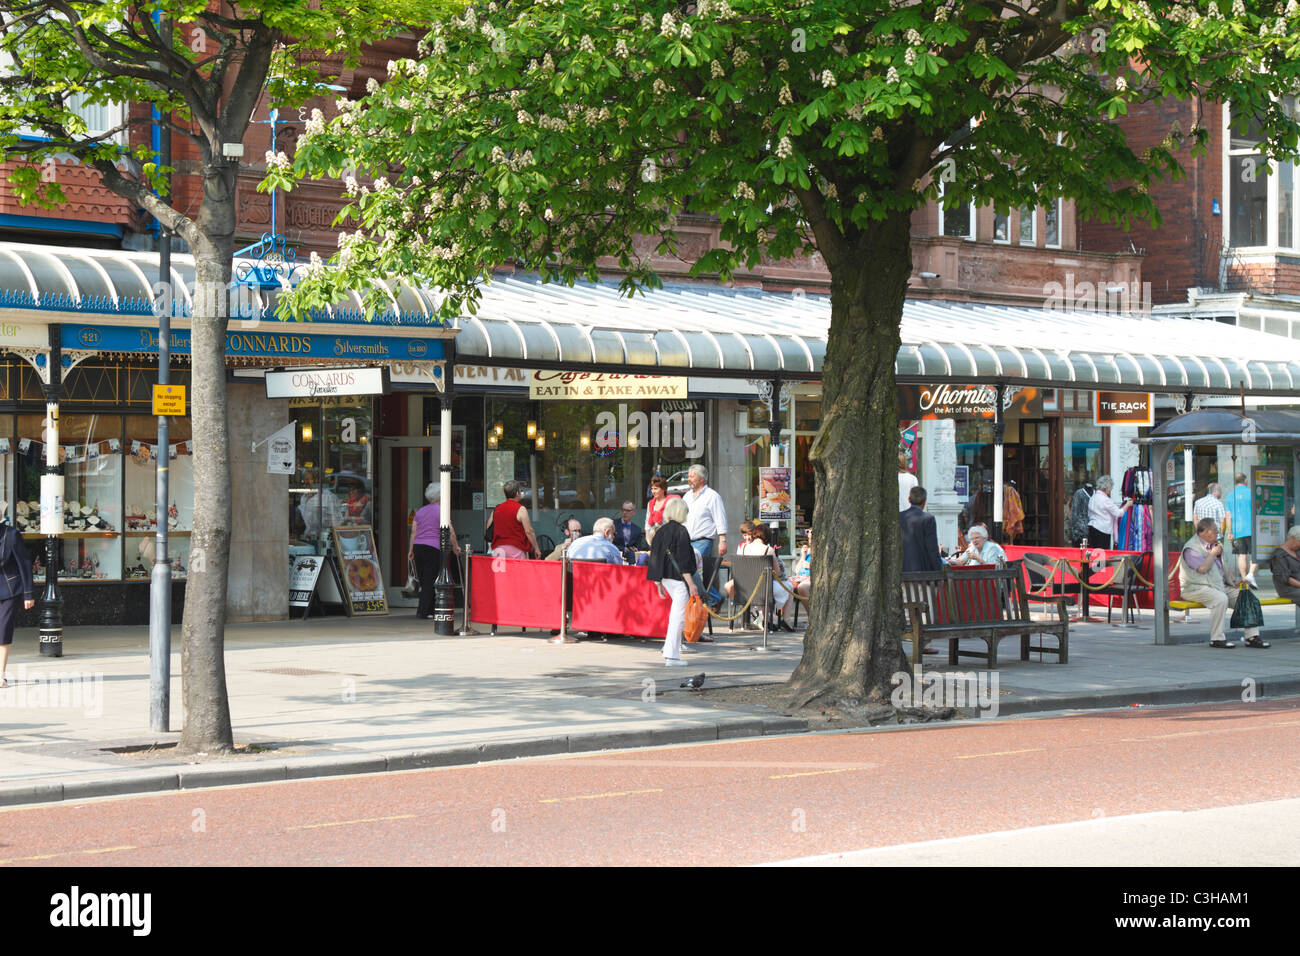 Pavement cafe on tree lined Lord Street in Southport, Merseyside, Lancashire, England, UK. Stock Photo